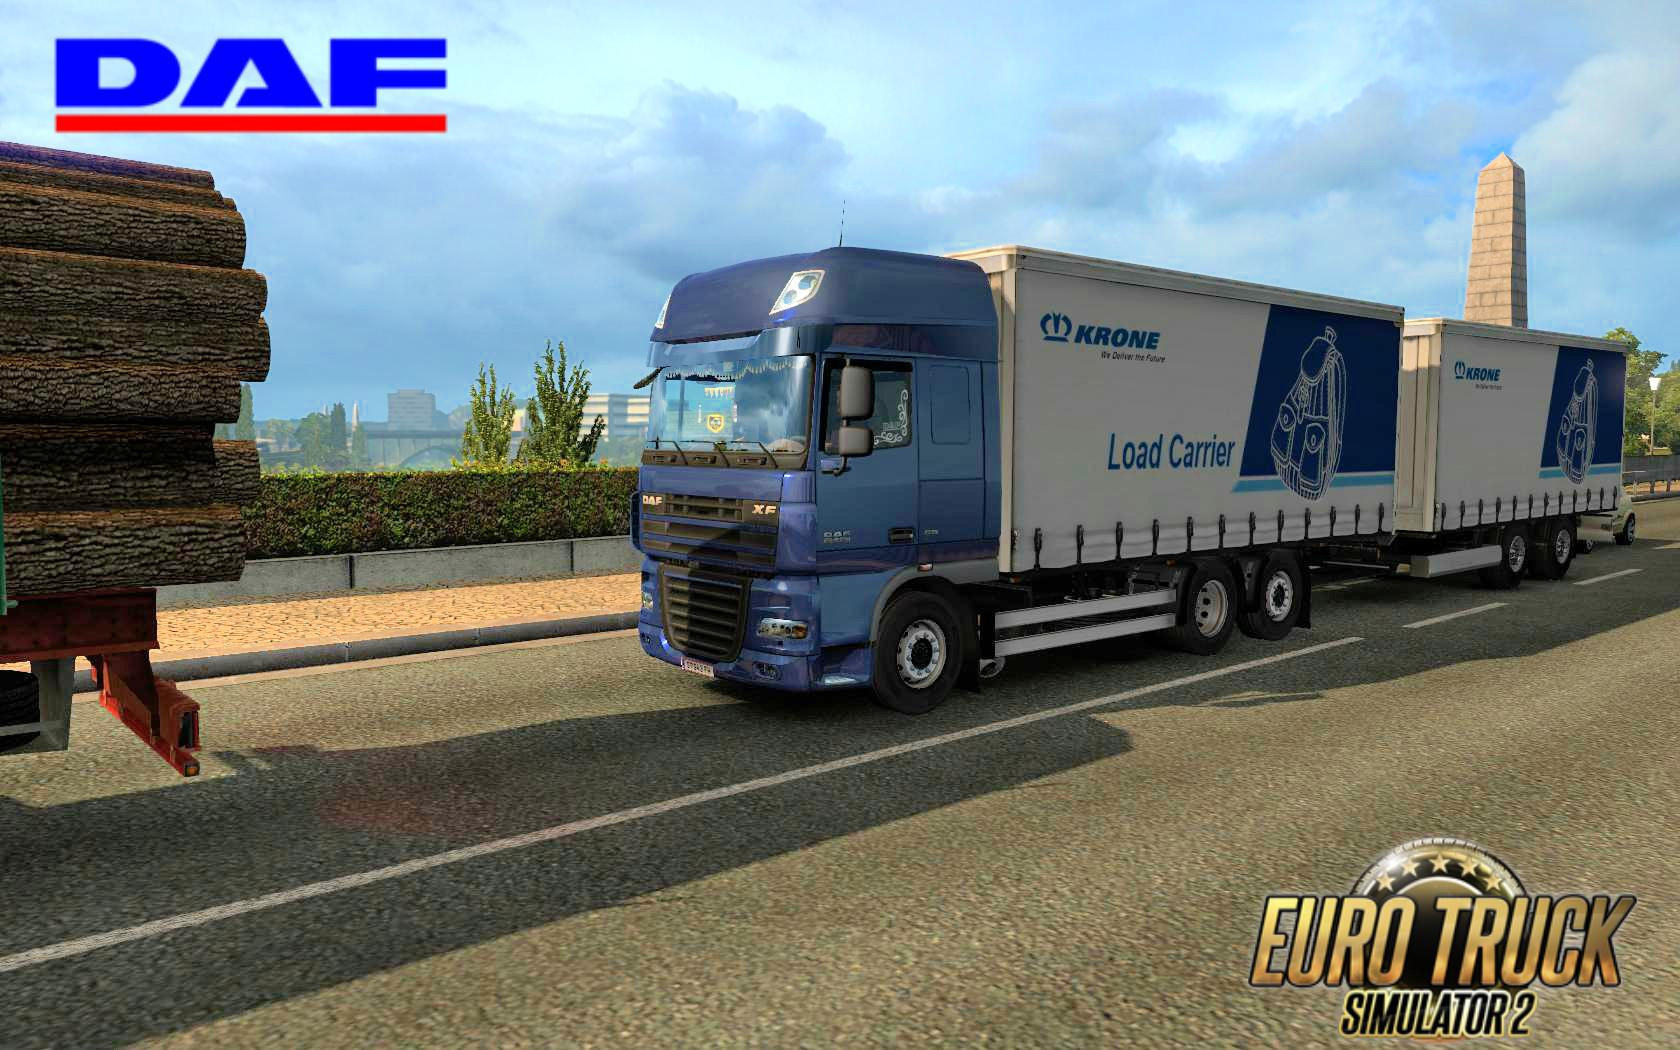 euro truck simulator 2 ets2 mods. Black Bedroom Furniture Sets. Home Design Ideas